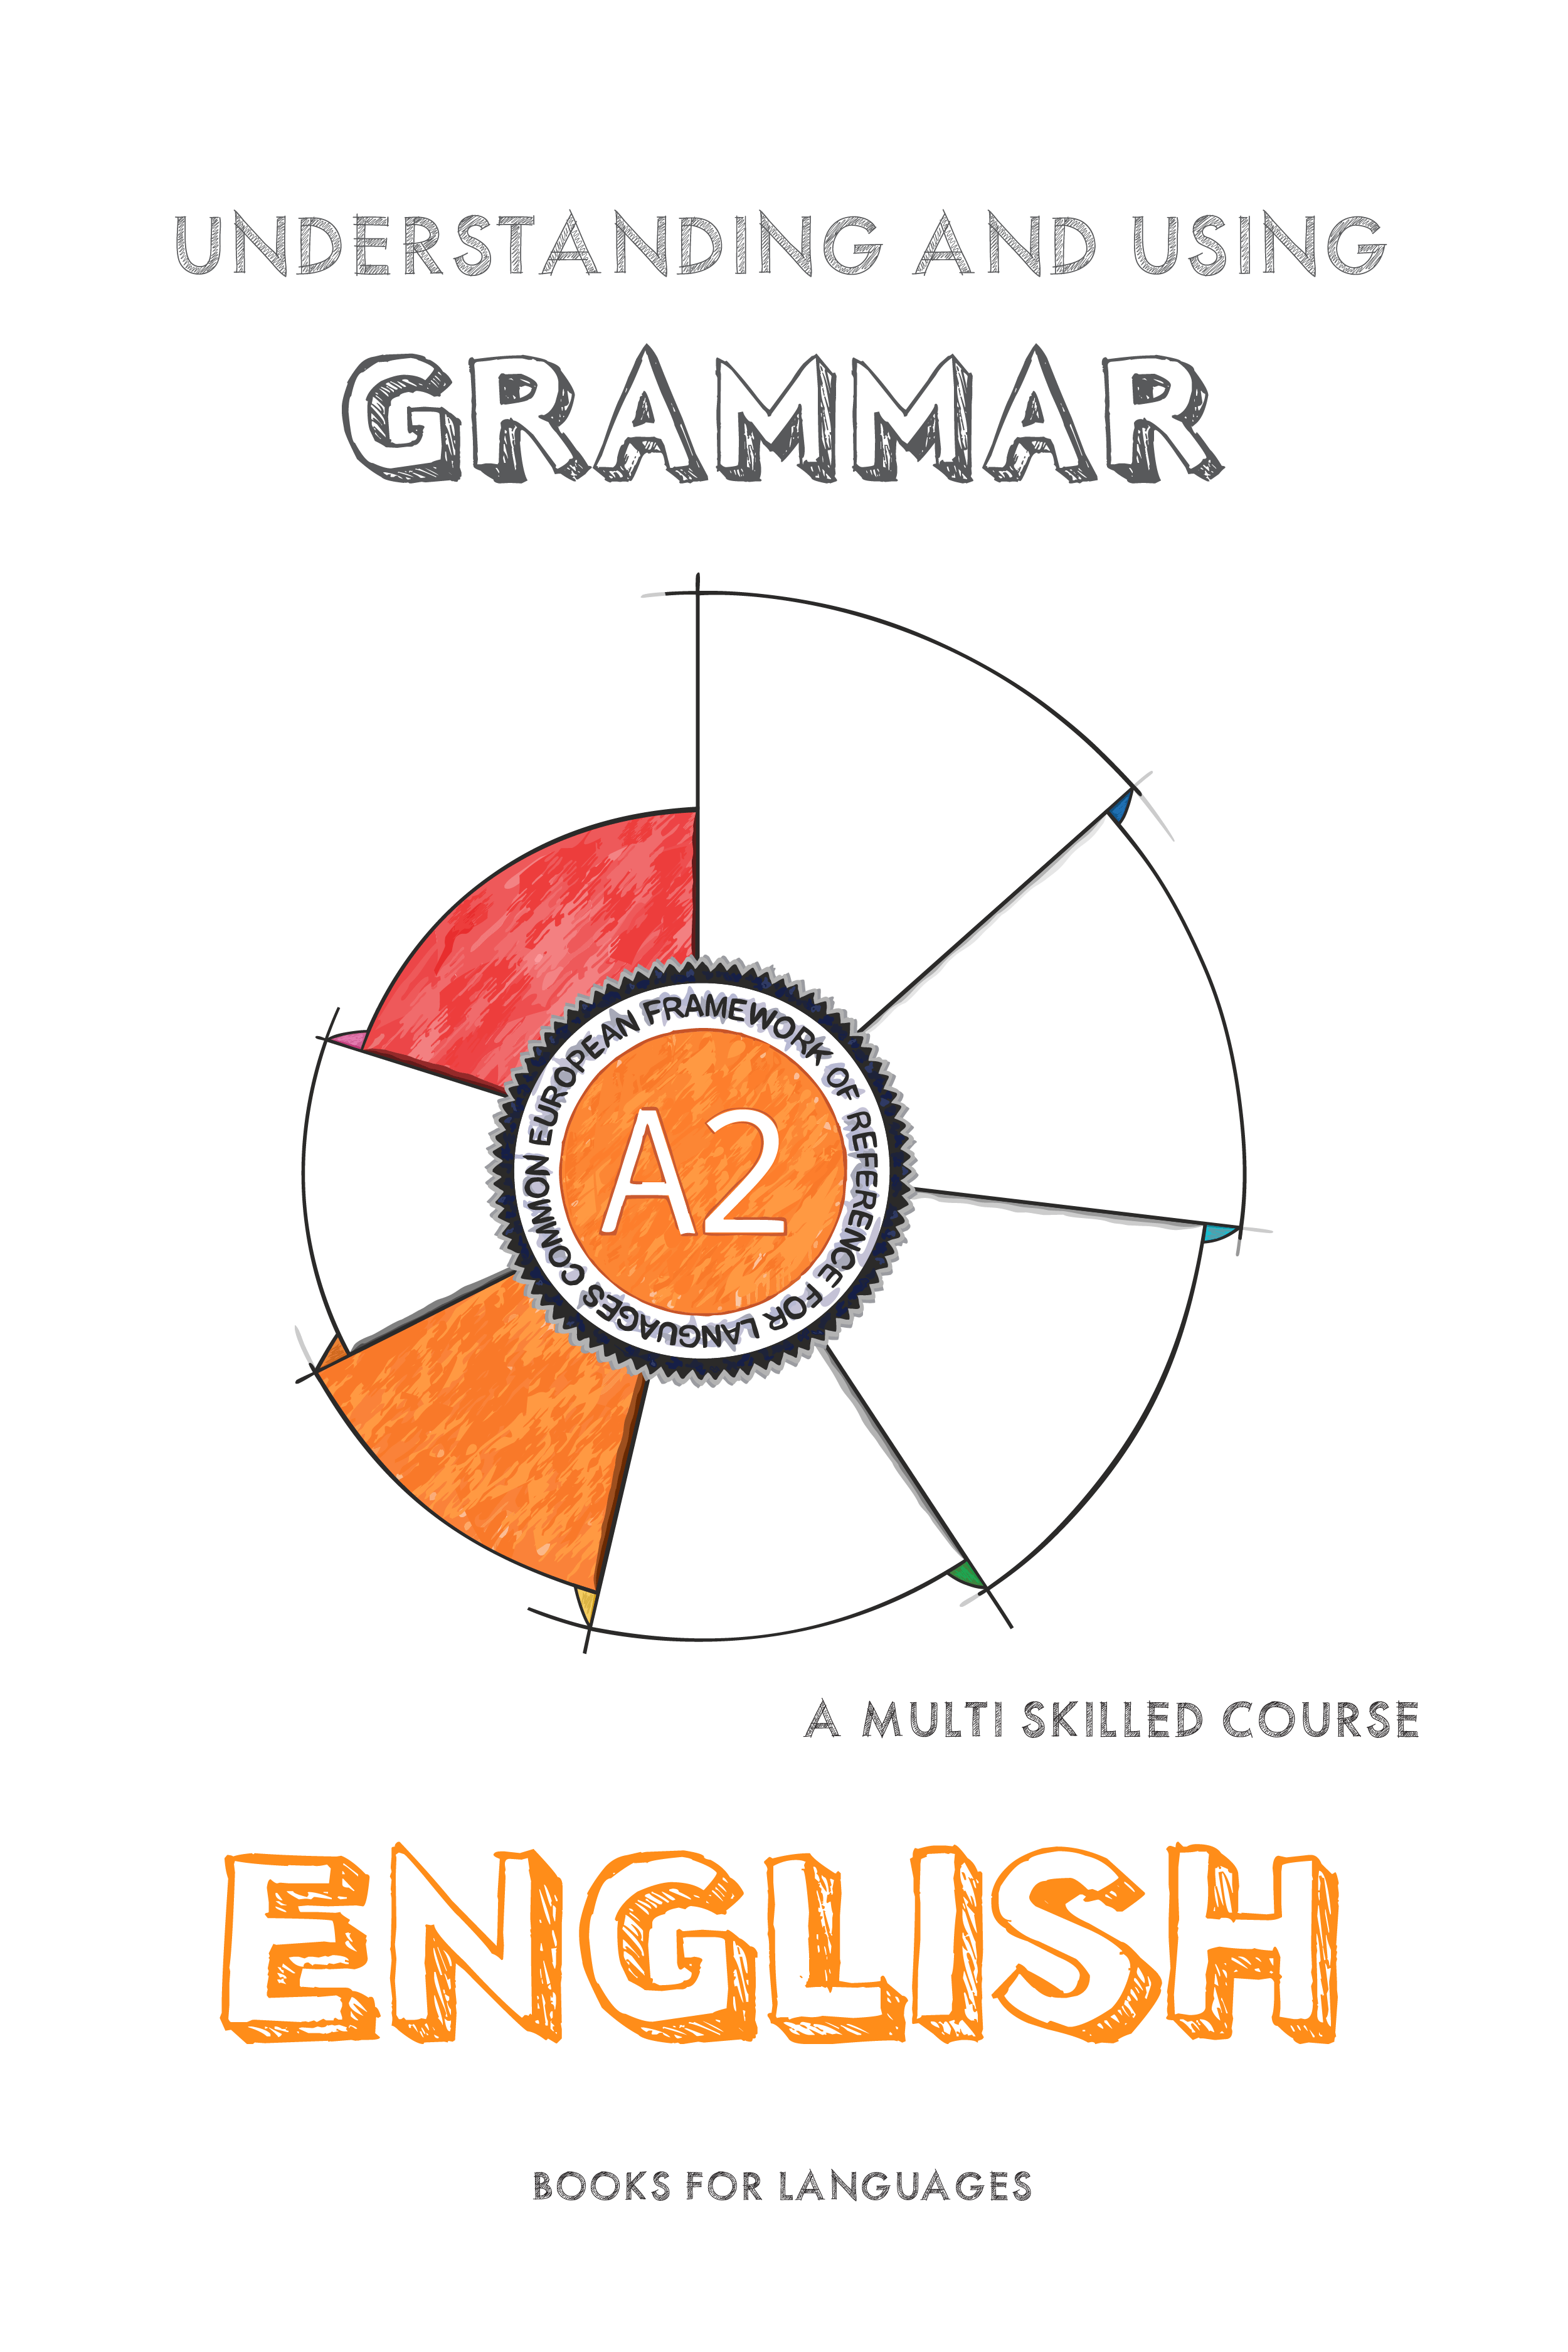 File:Book4languages-covers-grammar-a2-en png - Wikimedia Commons